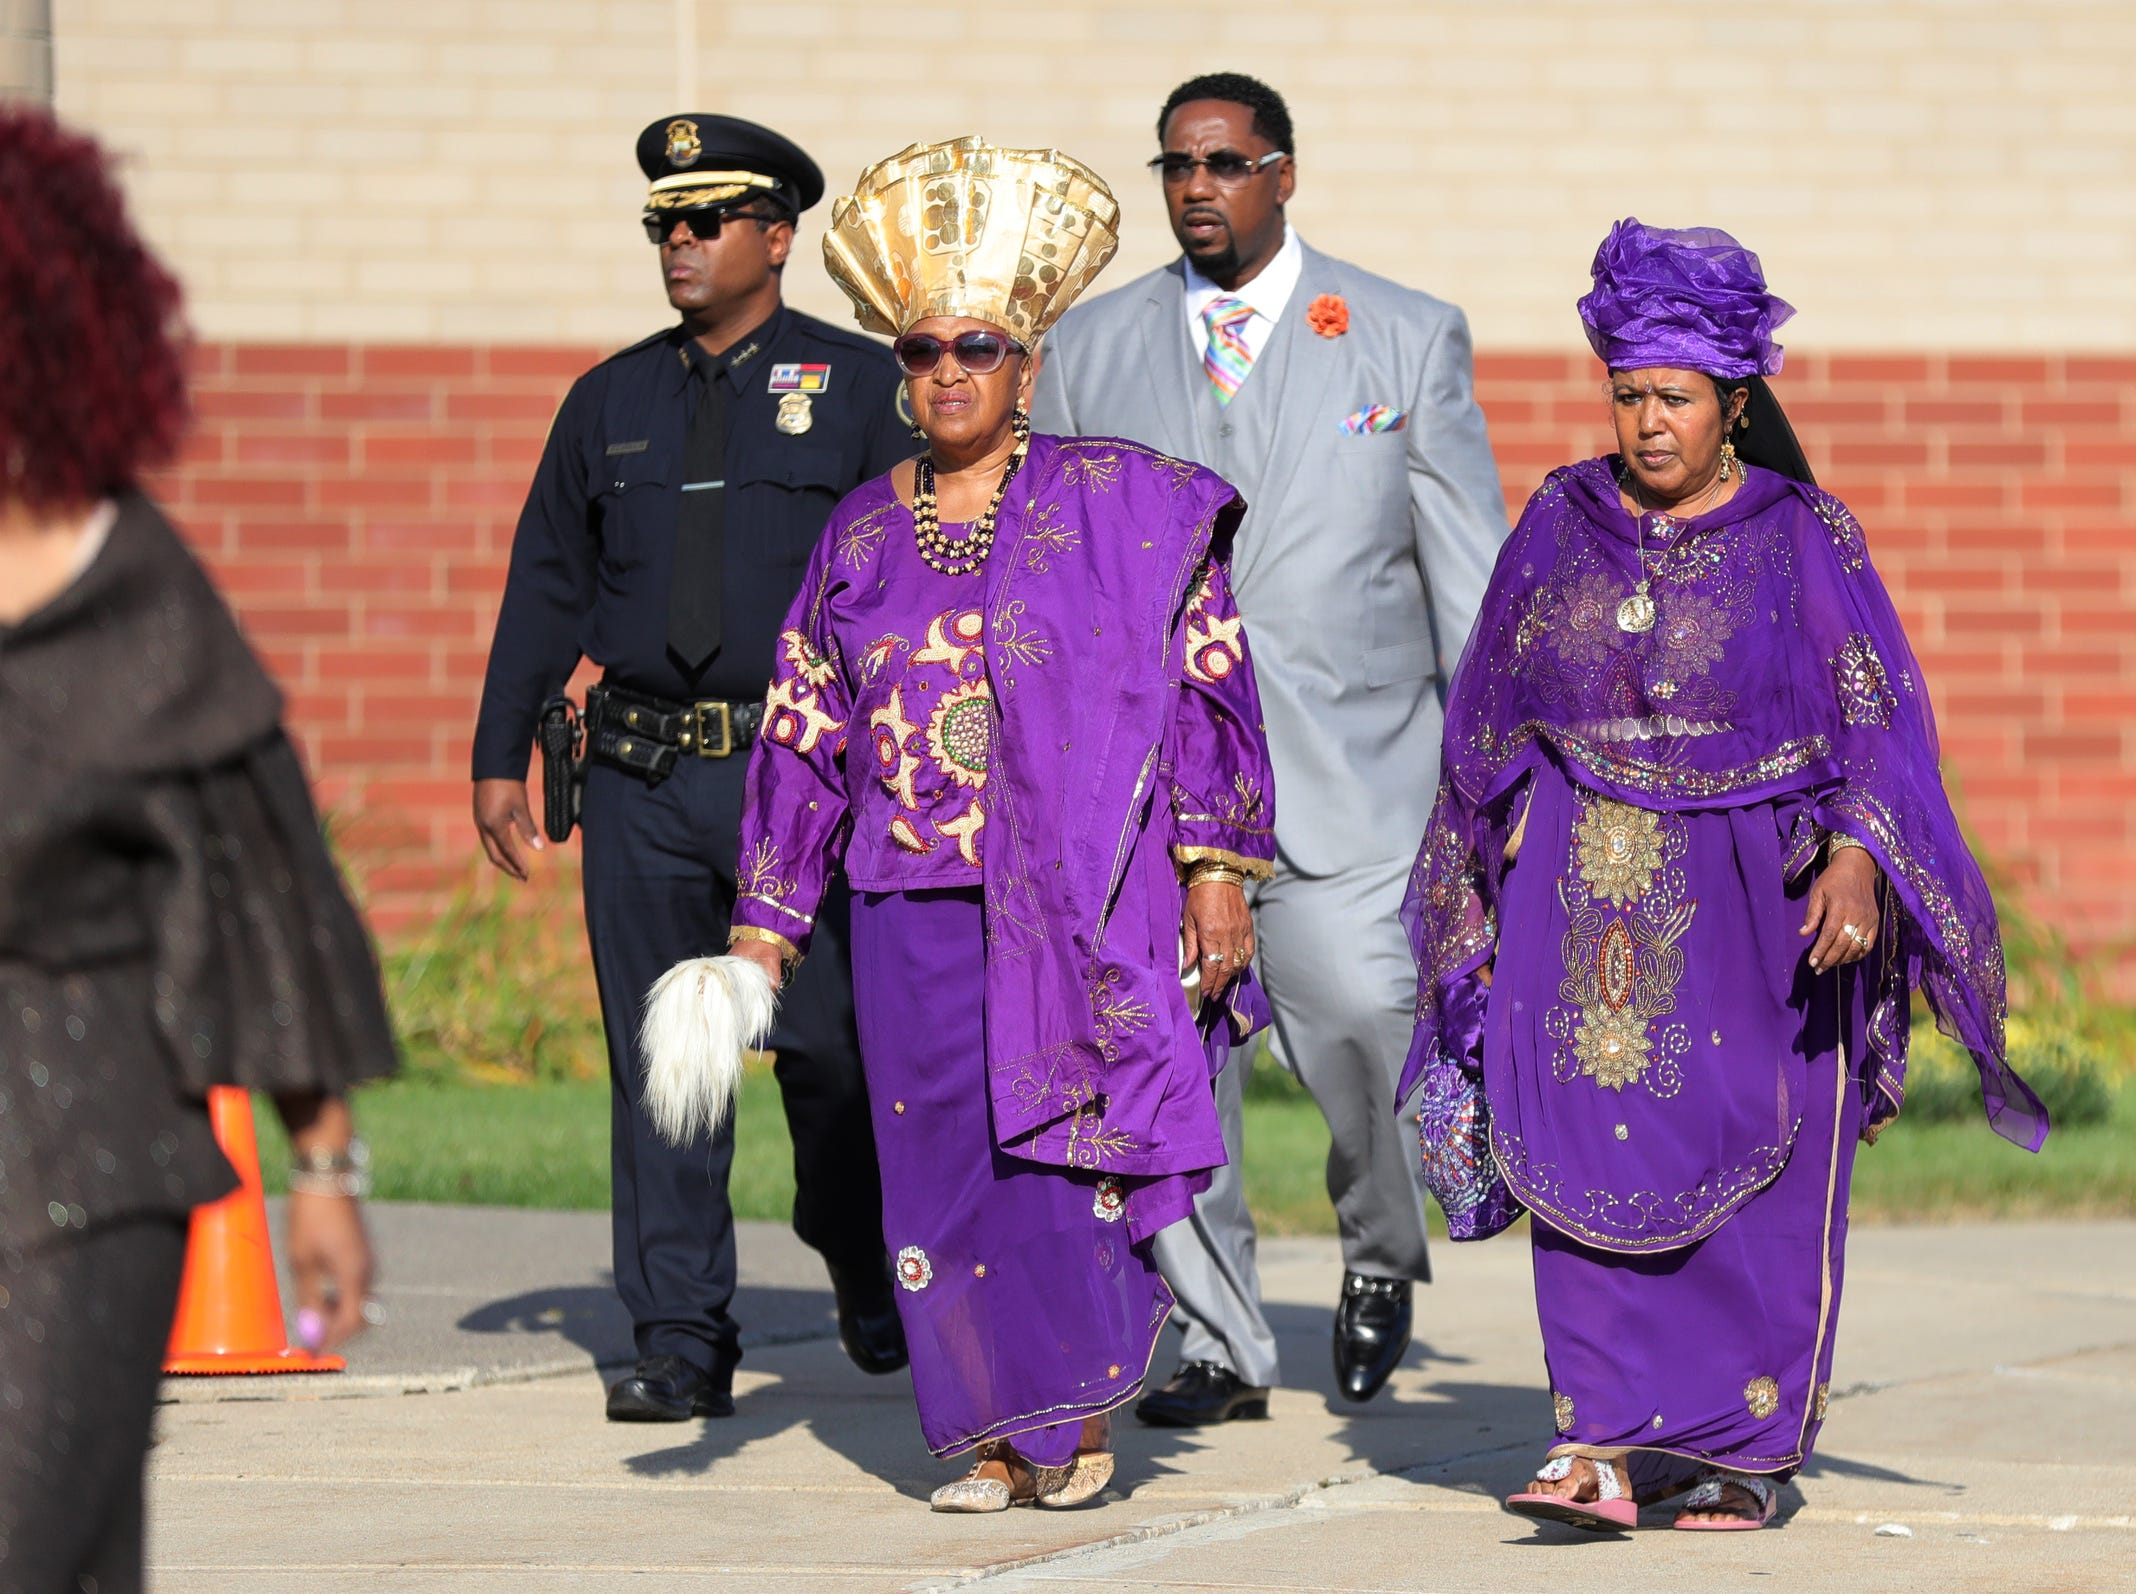 Attendees arrive for Aretha Franklin's funeral at Greater Grace Temple in Detroit on Friday, August 31, 2018.